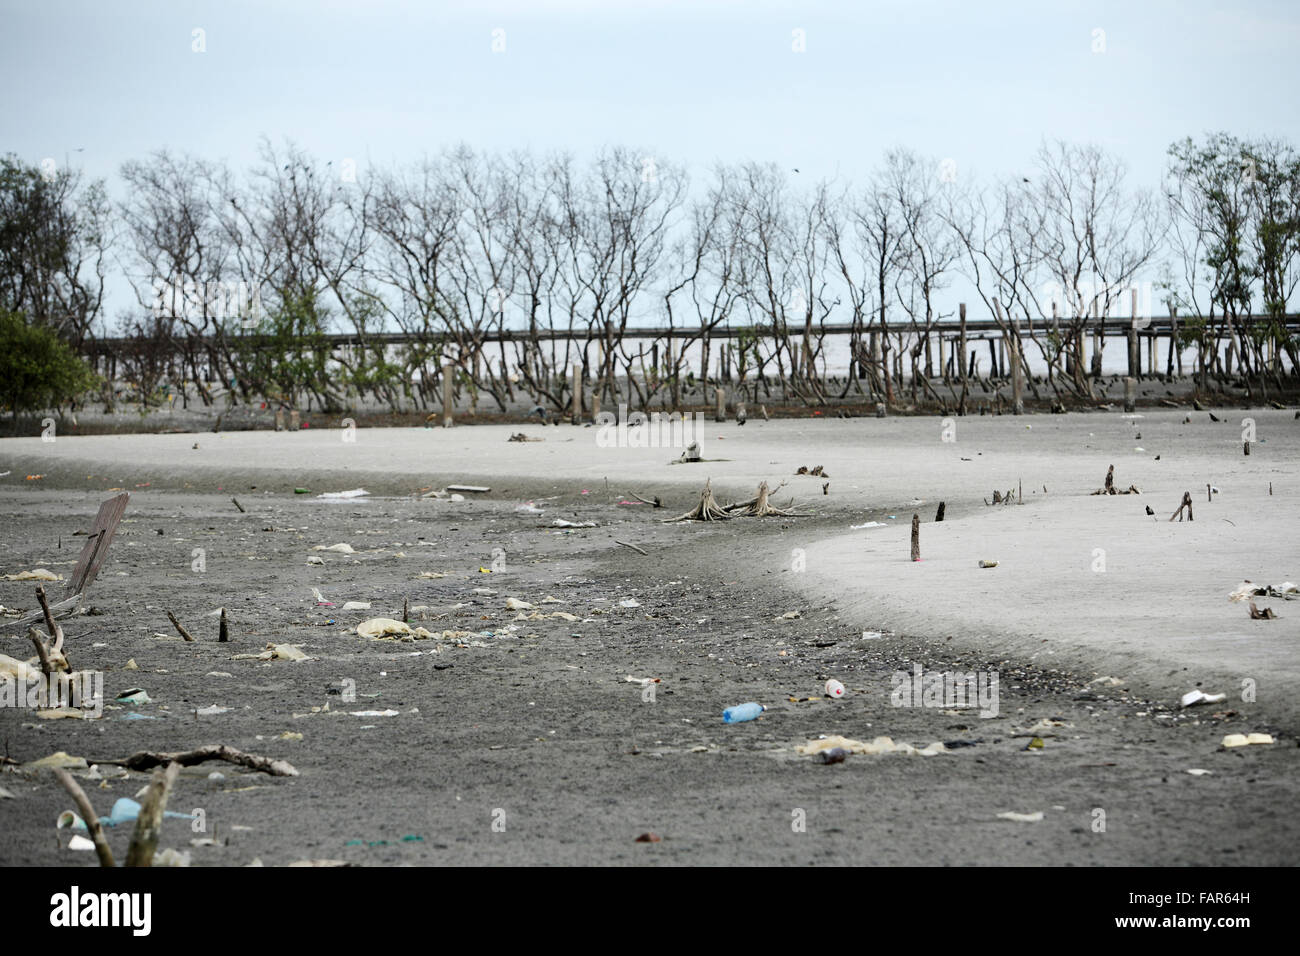 stock image of polluted beach - Stock Image